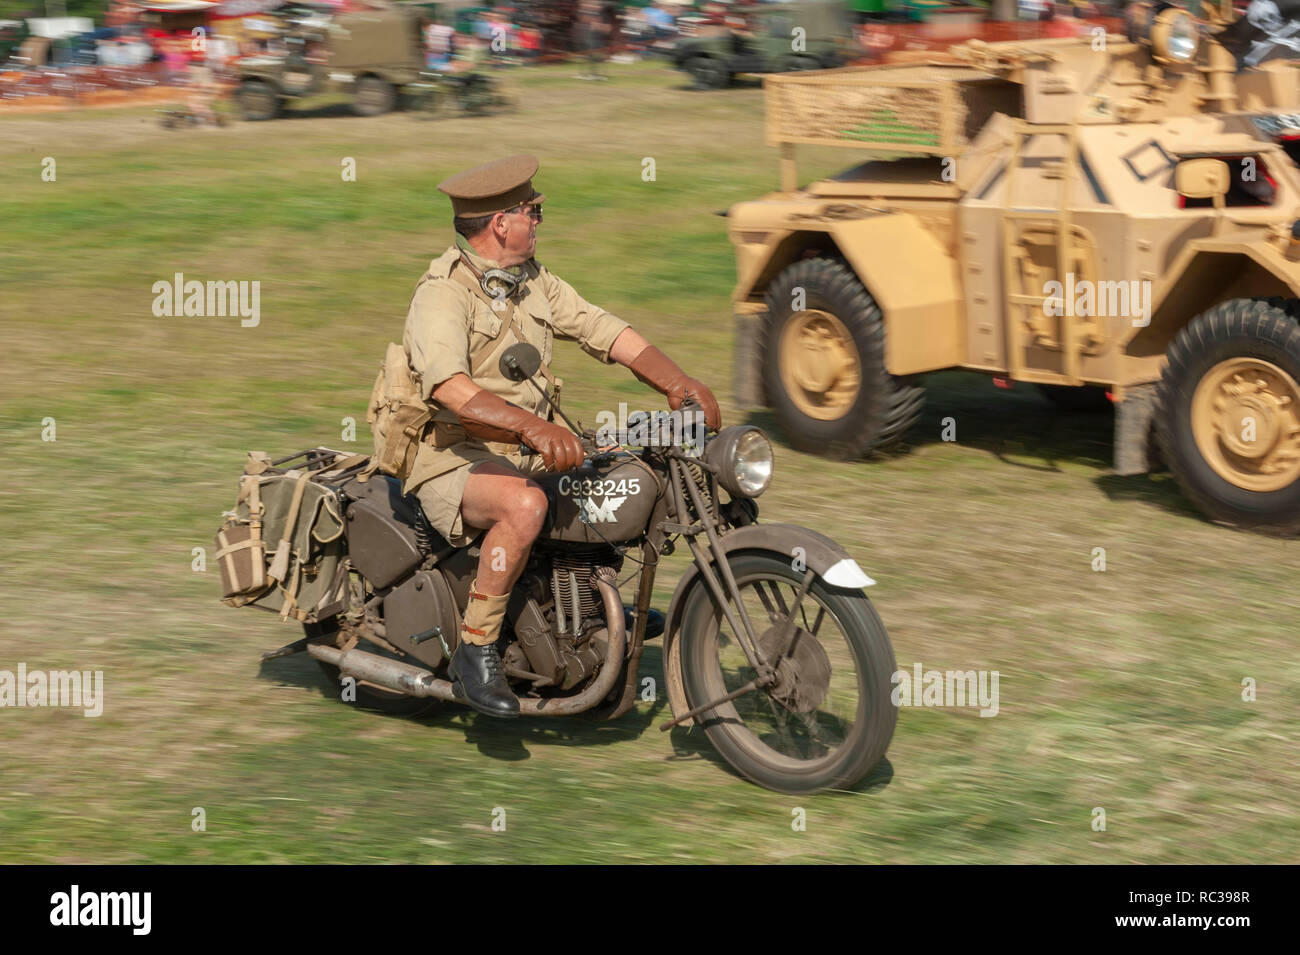 Vintage British Army Matchless G3 350cc motorcycle at Preston Steam Rally, Kent, England - Stock Image